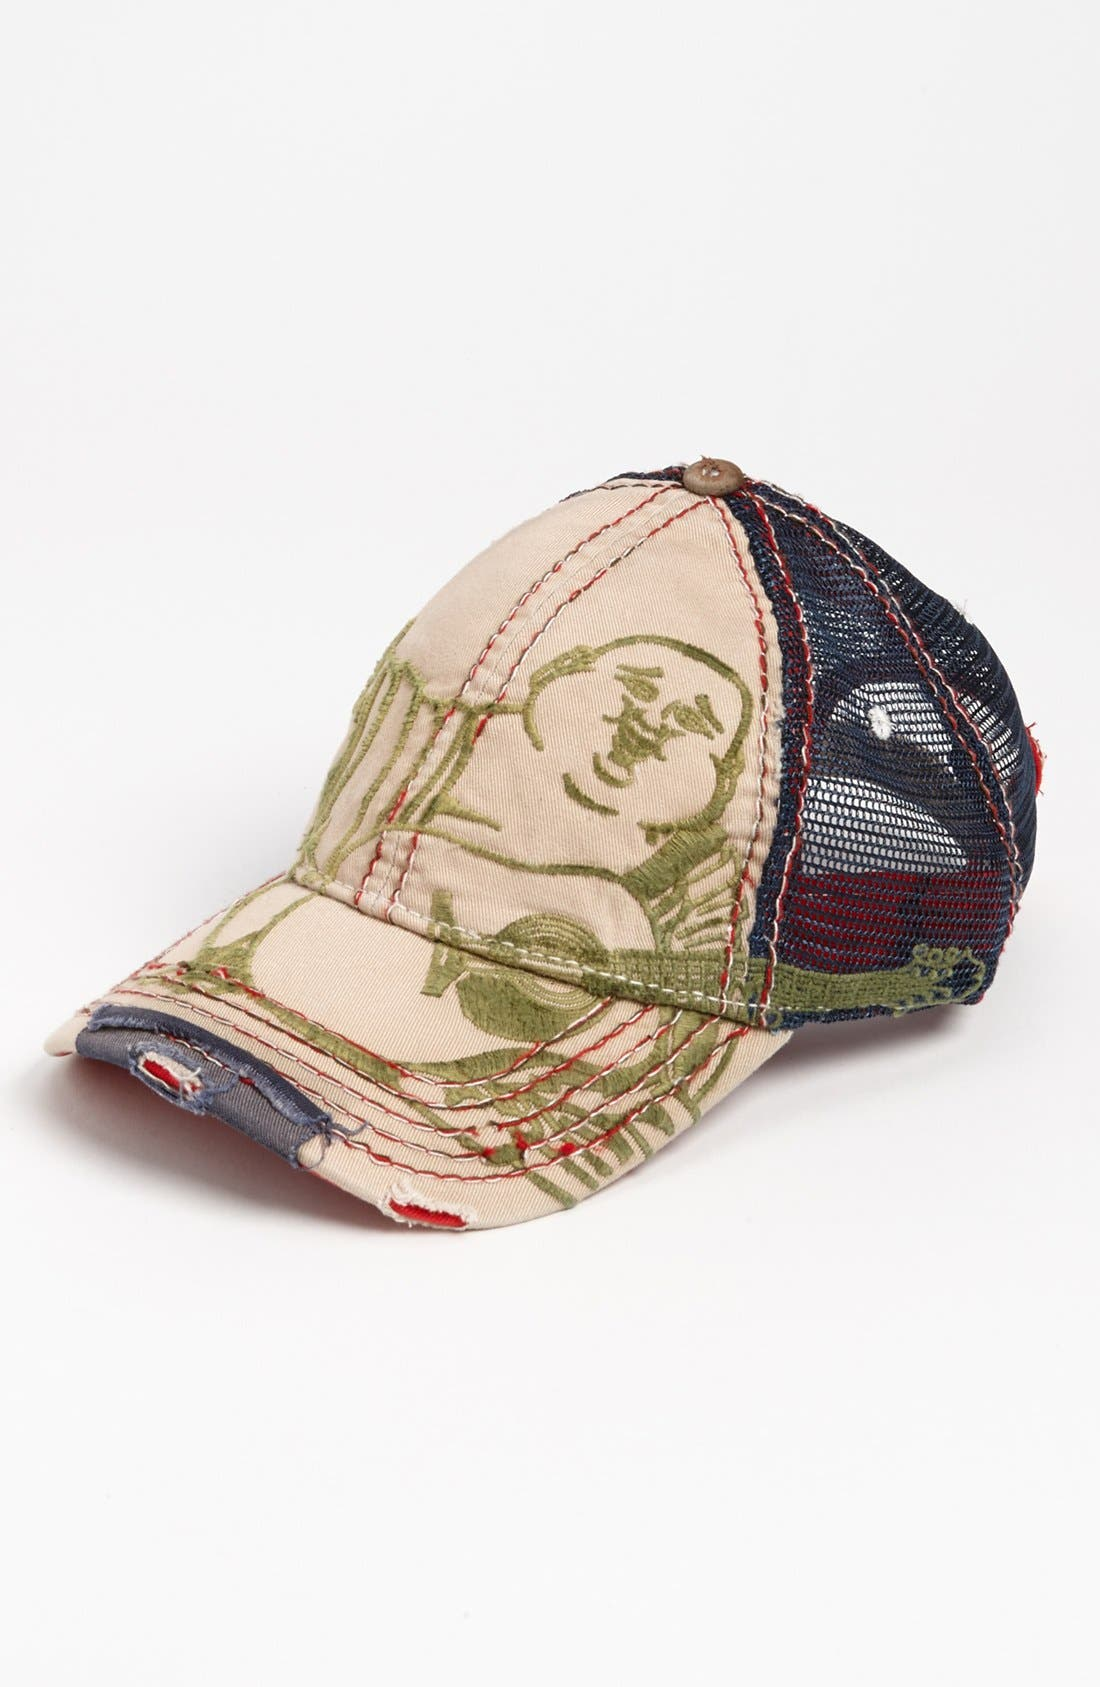 Main Image - True Religion Brand Jeans 'Giant Buddha' Trucker Hat